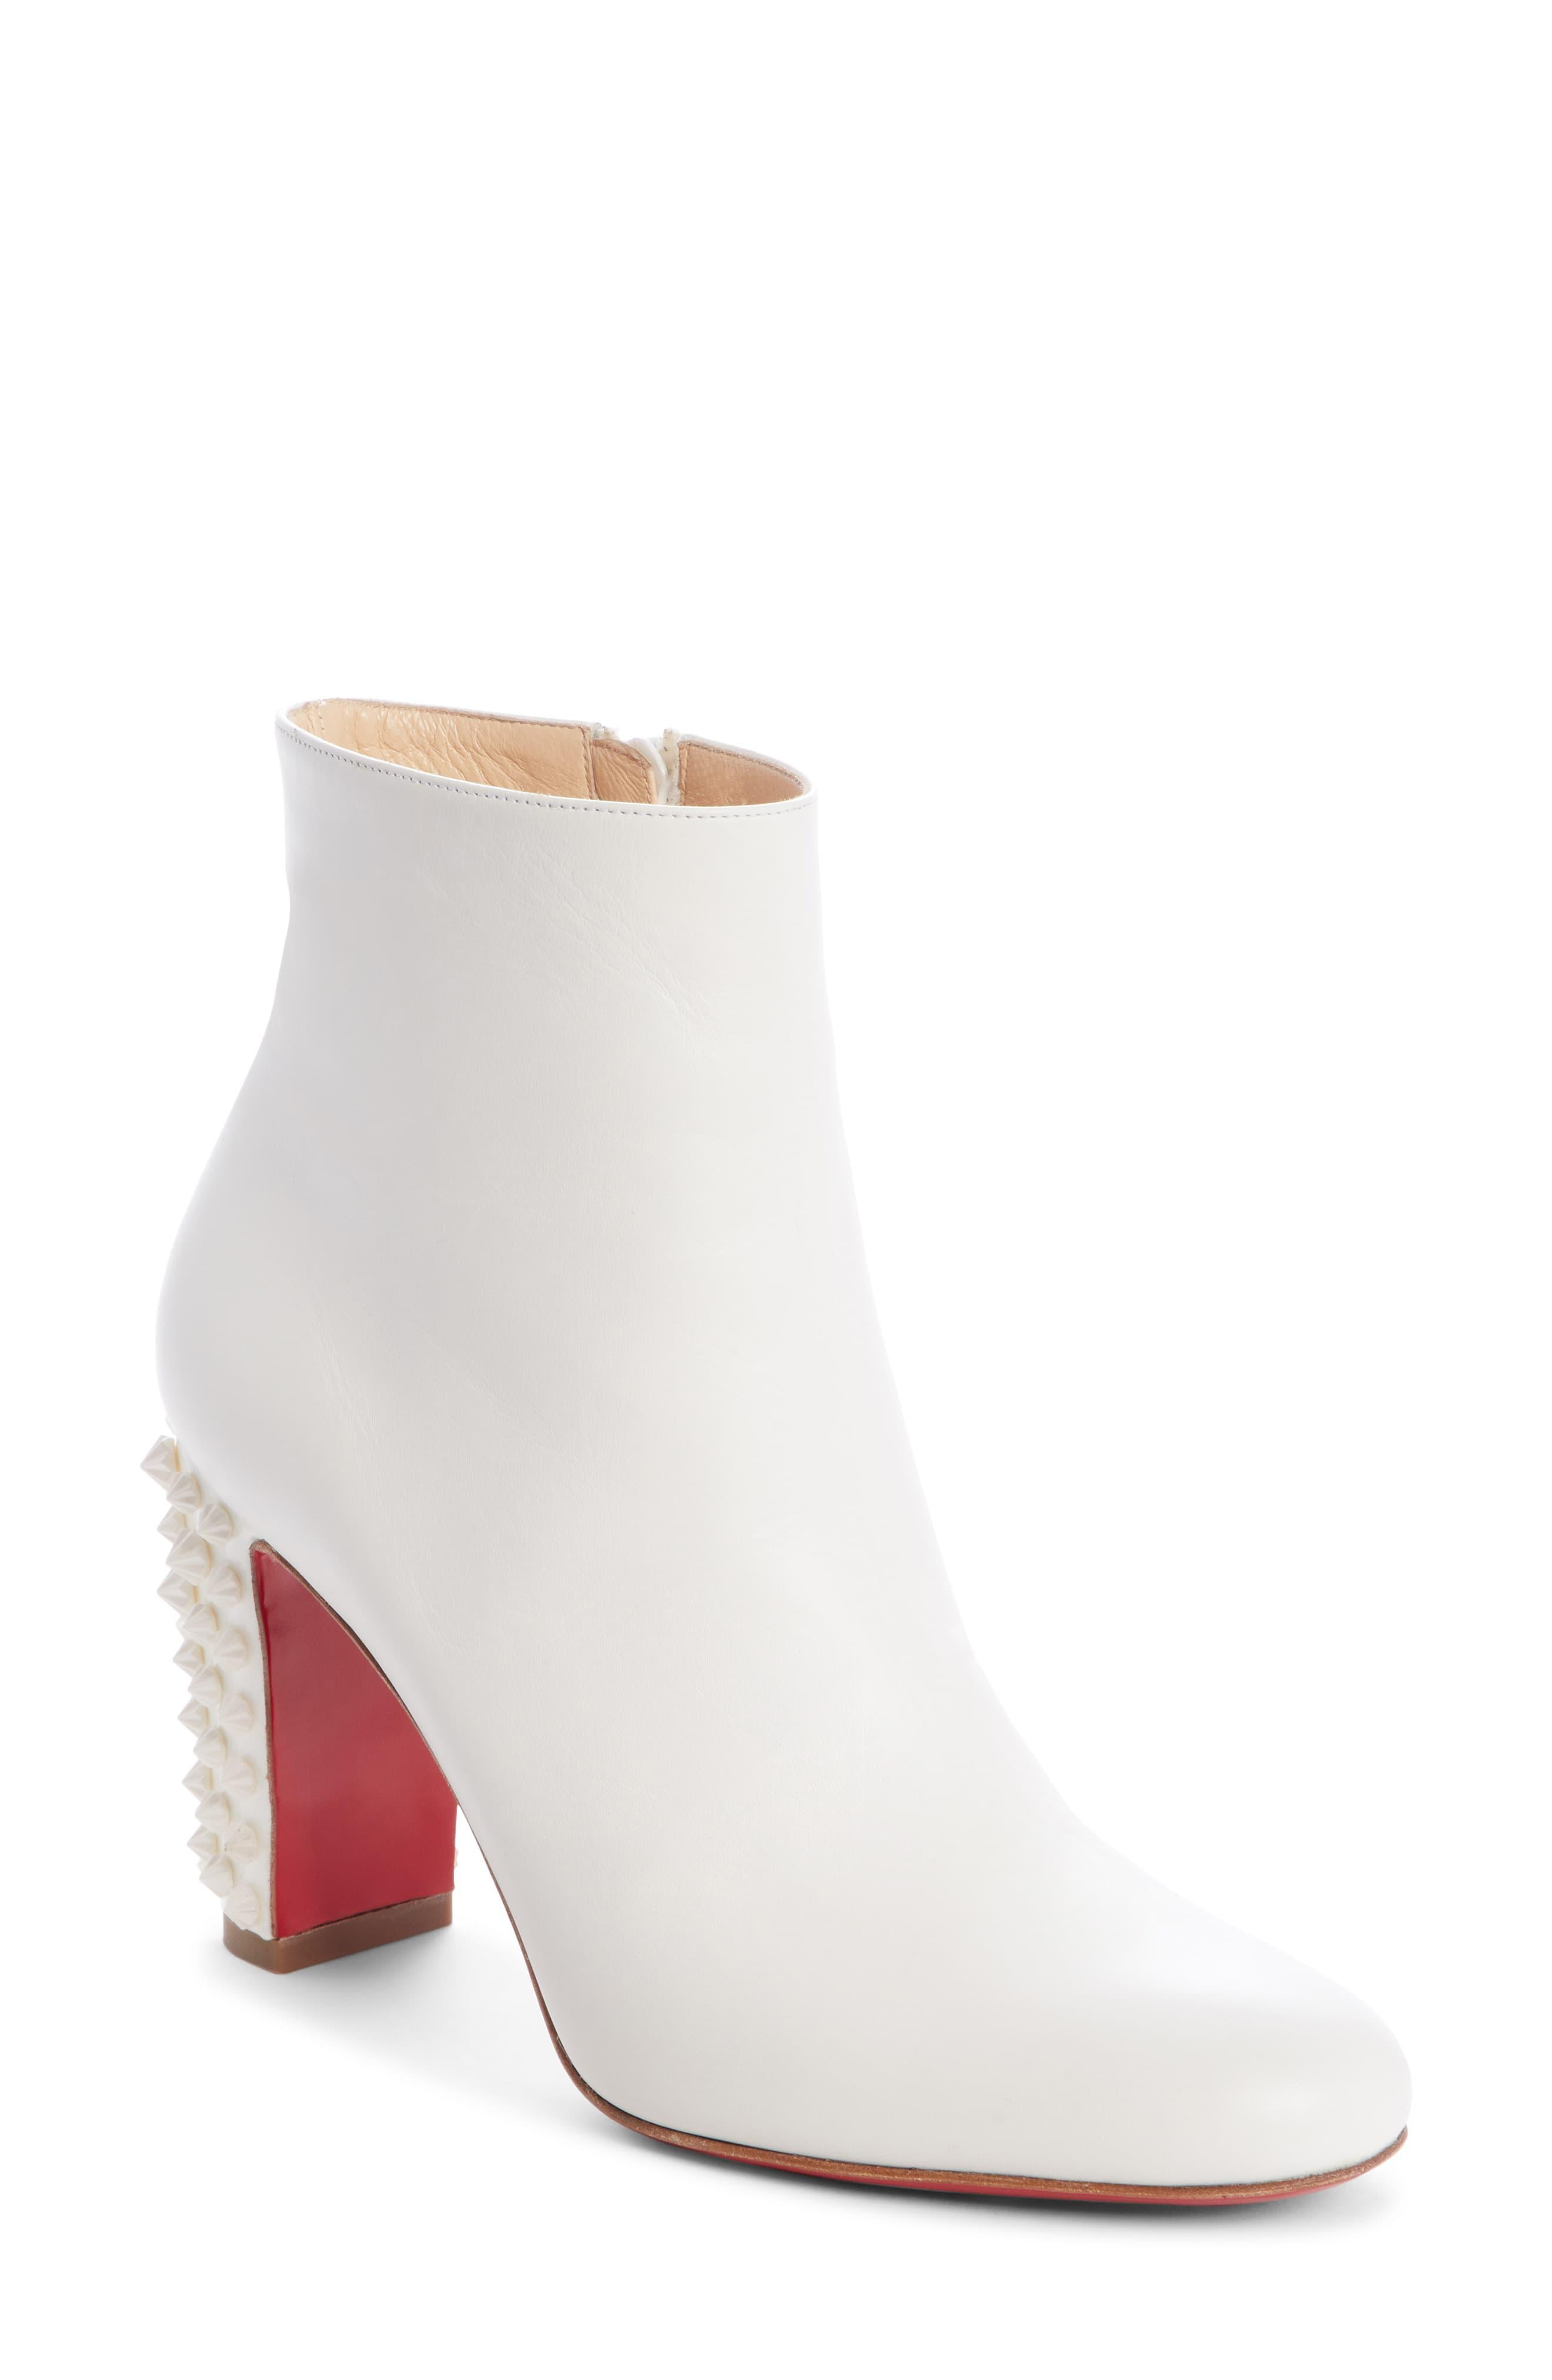 c22b0386d04 Women's White Suzi Folk Spiked Bootie